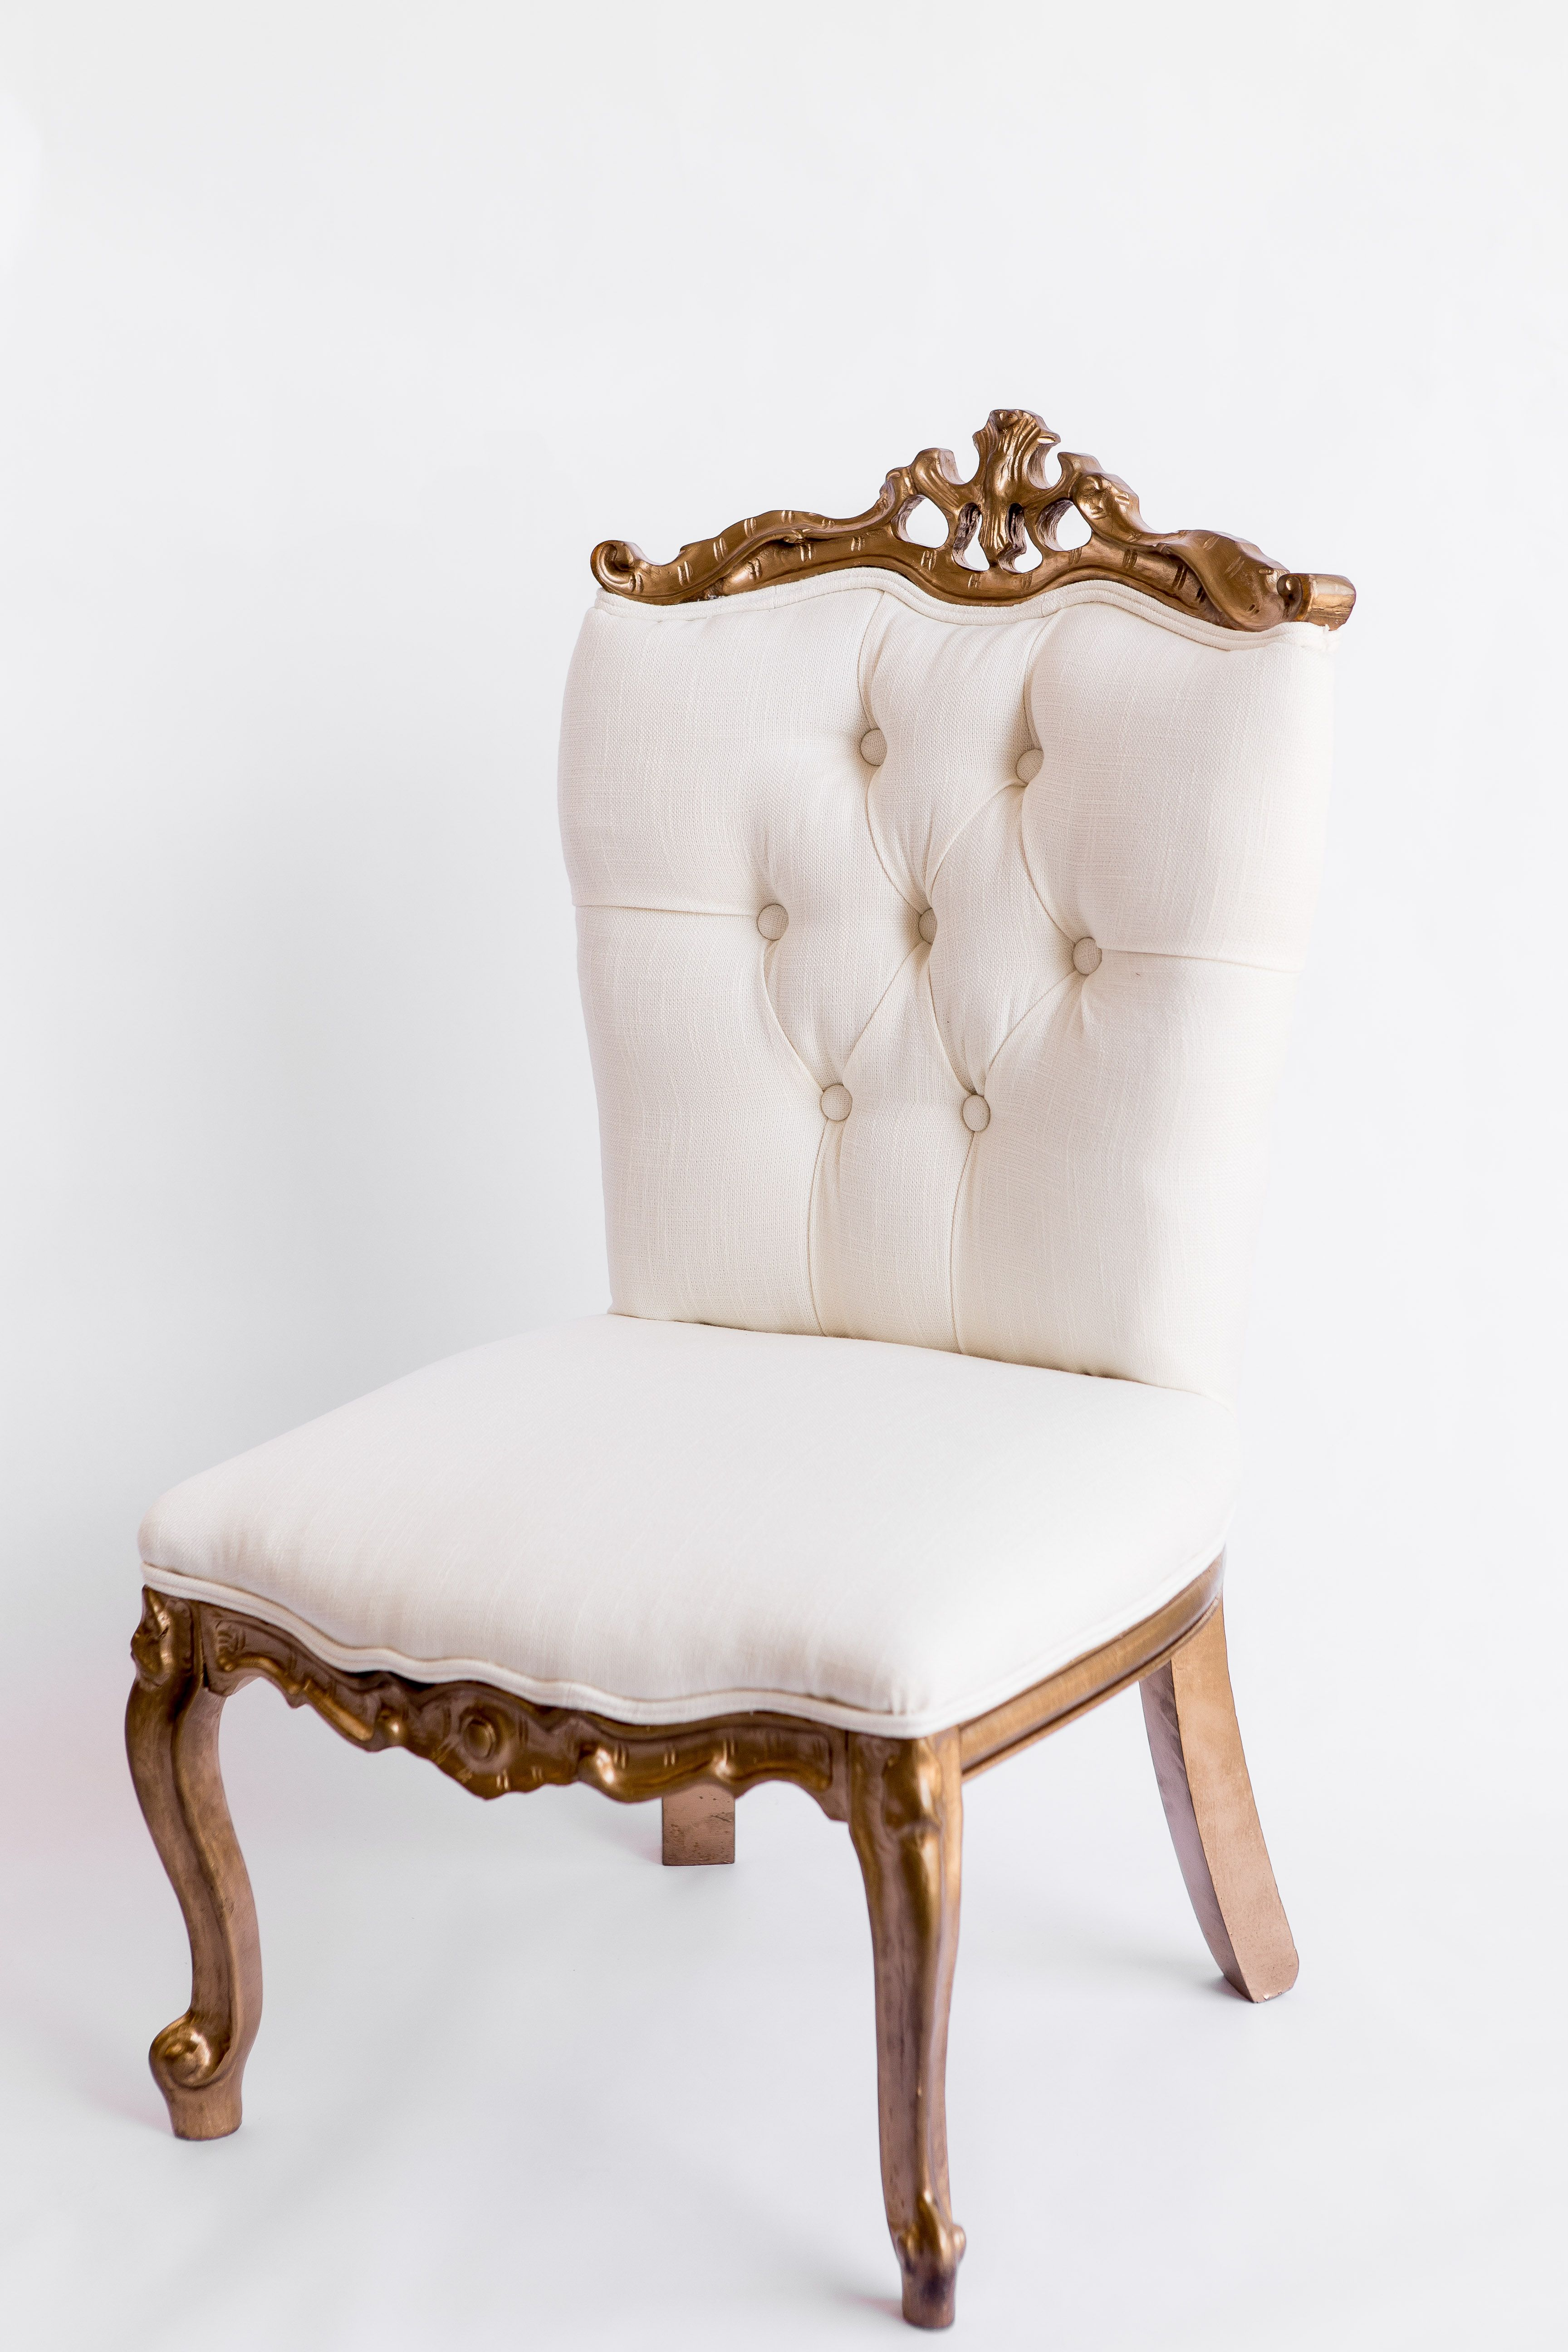 White And Gold Chair Vintage Rentals Rental Home Decor Teal Rooms Luxury Furniture